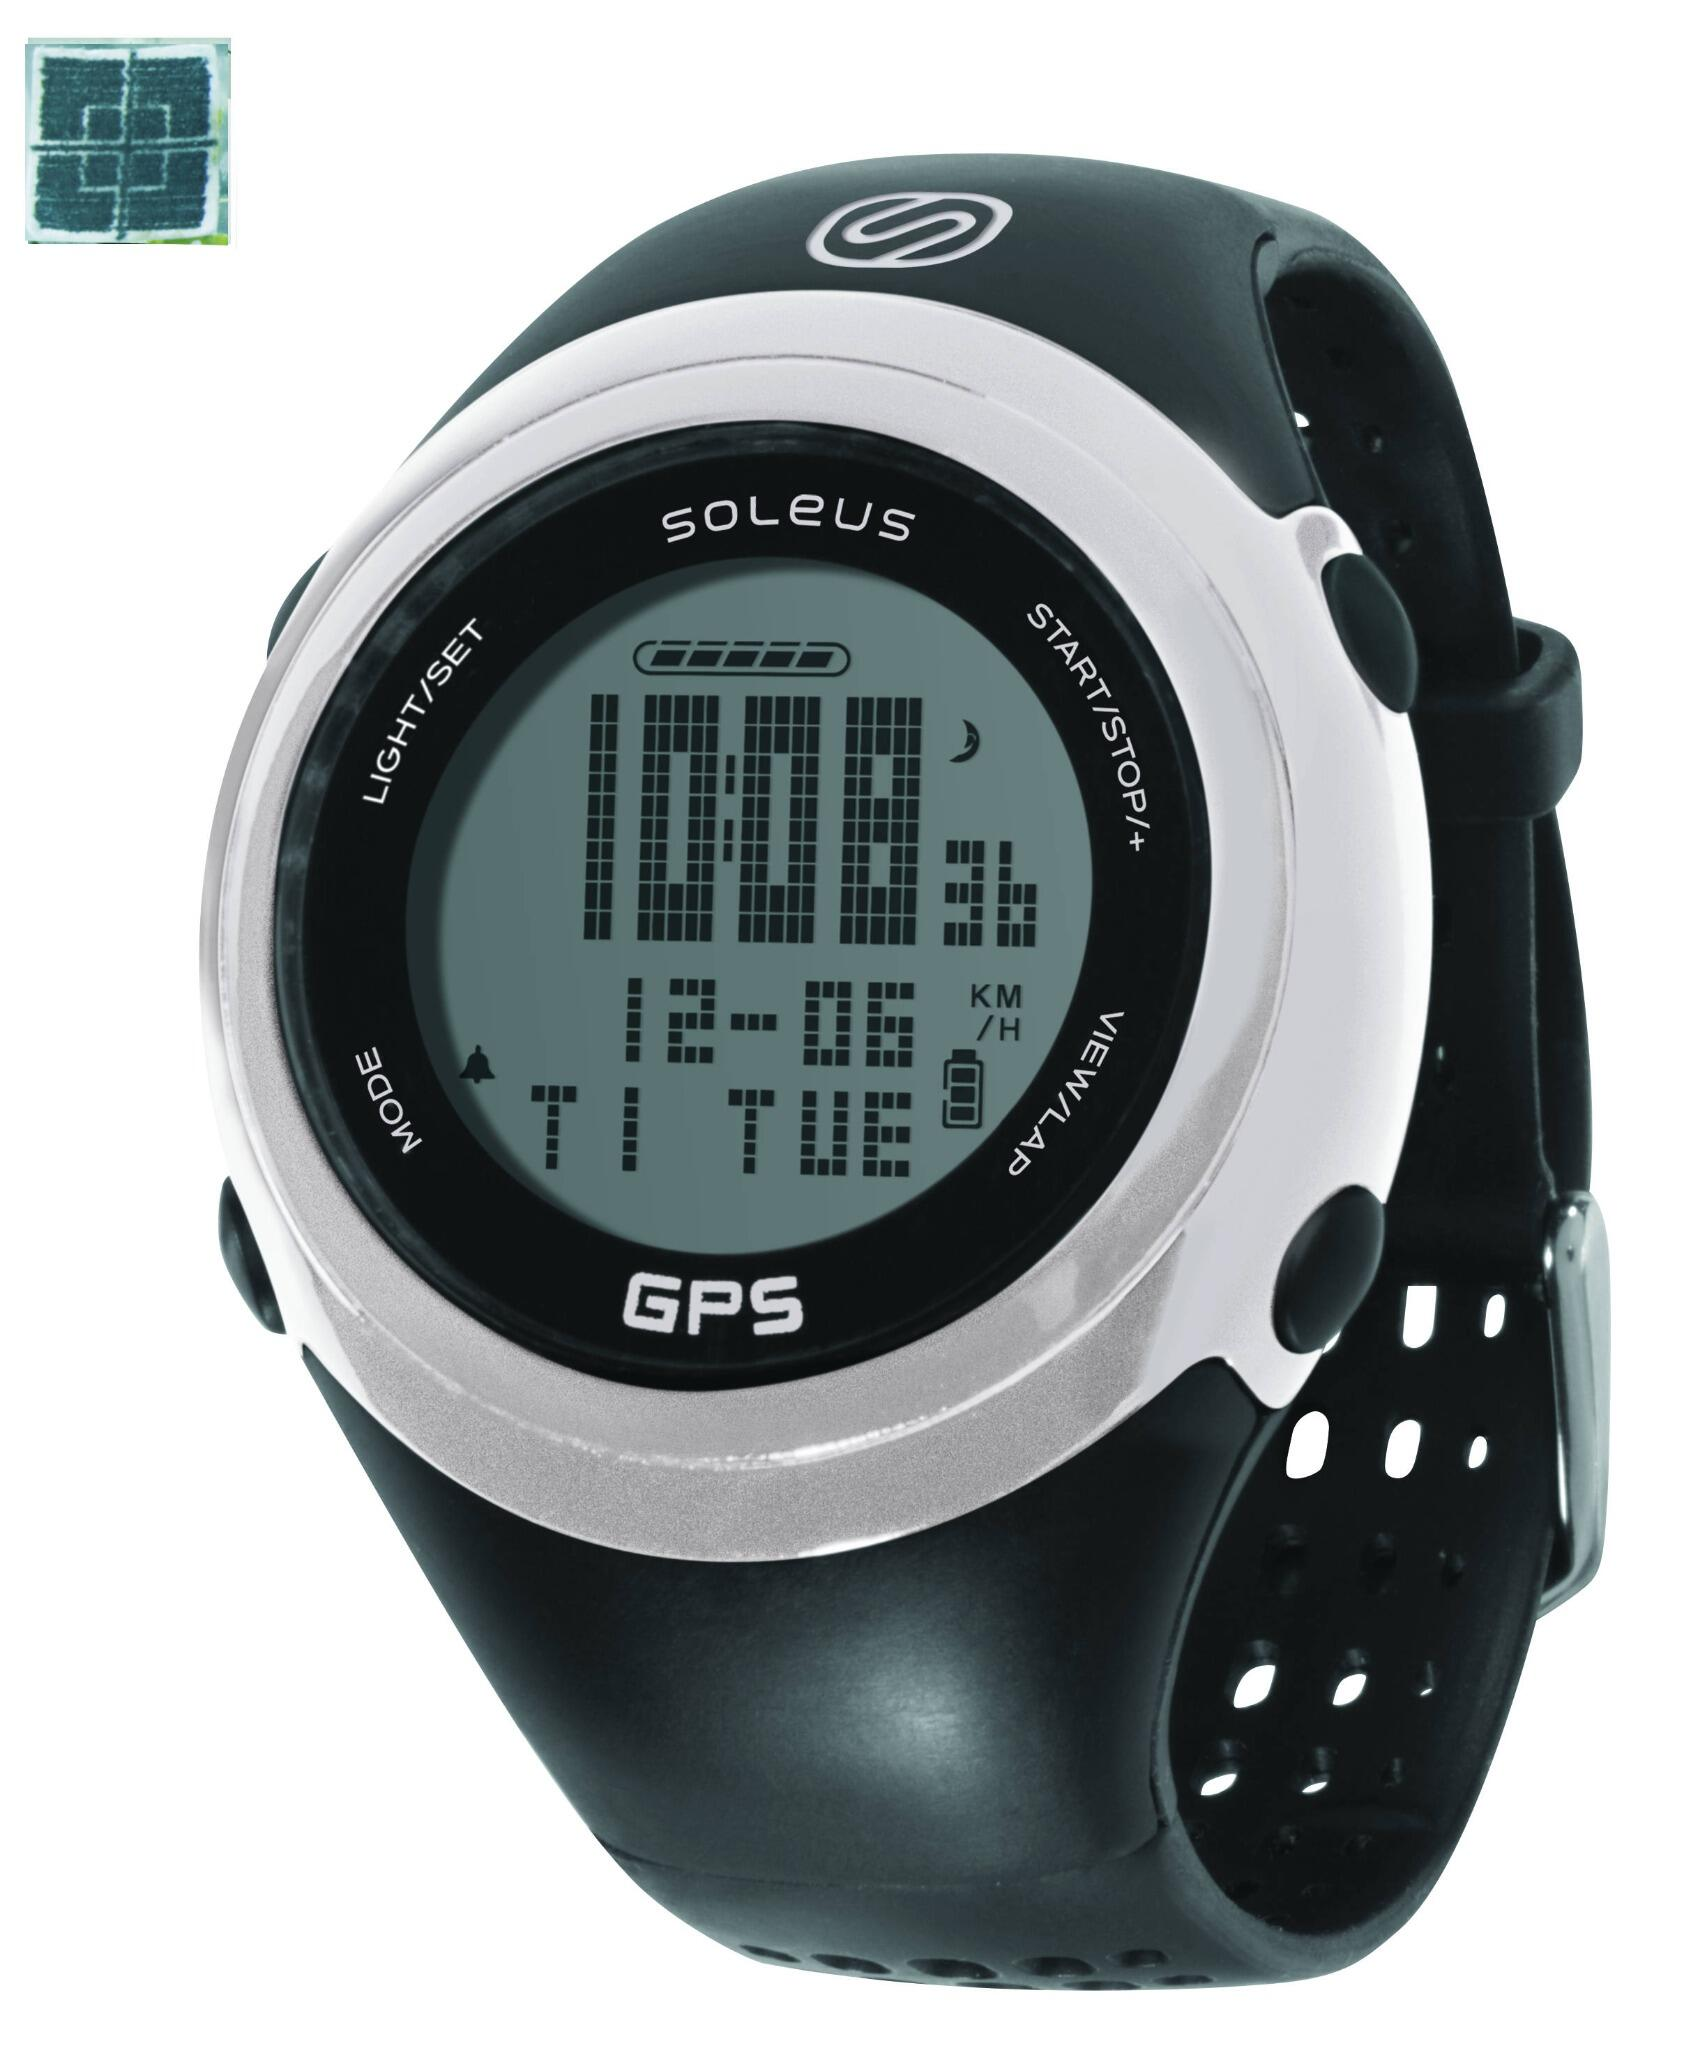 Last chance to #WIN a Soleus GPS FIT 1.0! Just follow @TheRunningBug and @FitBrands + RT! #RBtwittercomp http://t.co/U0a3abf88V